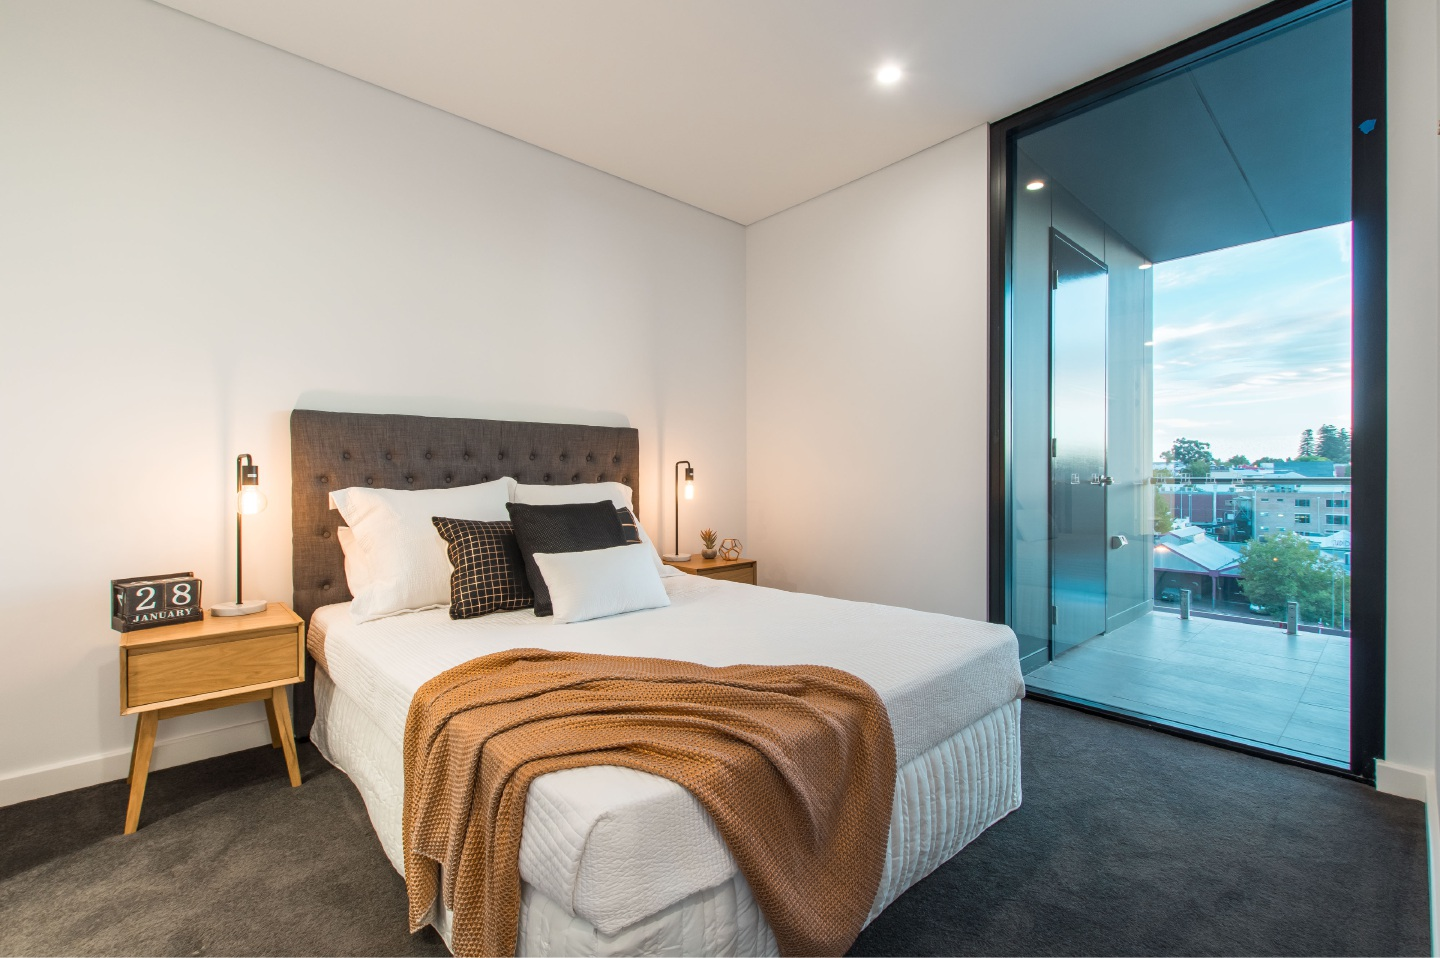 The Railway 23 project in Subiaco offers a superb lifestyle.